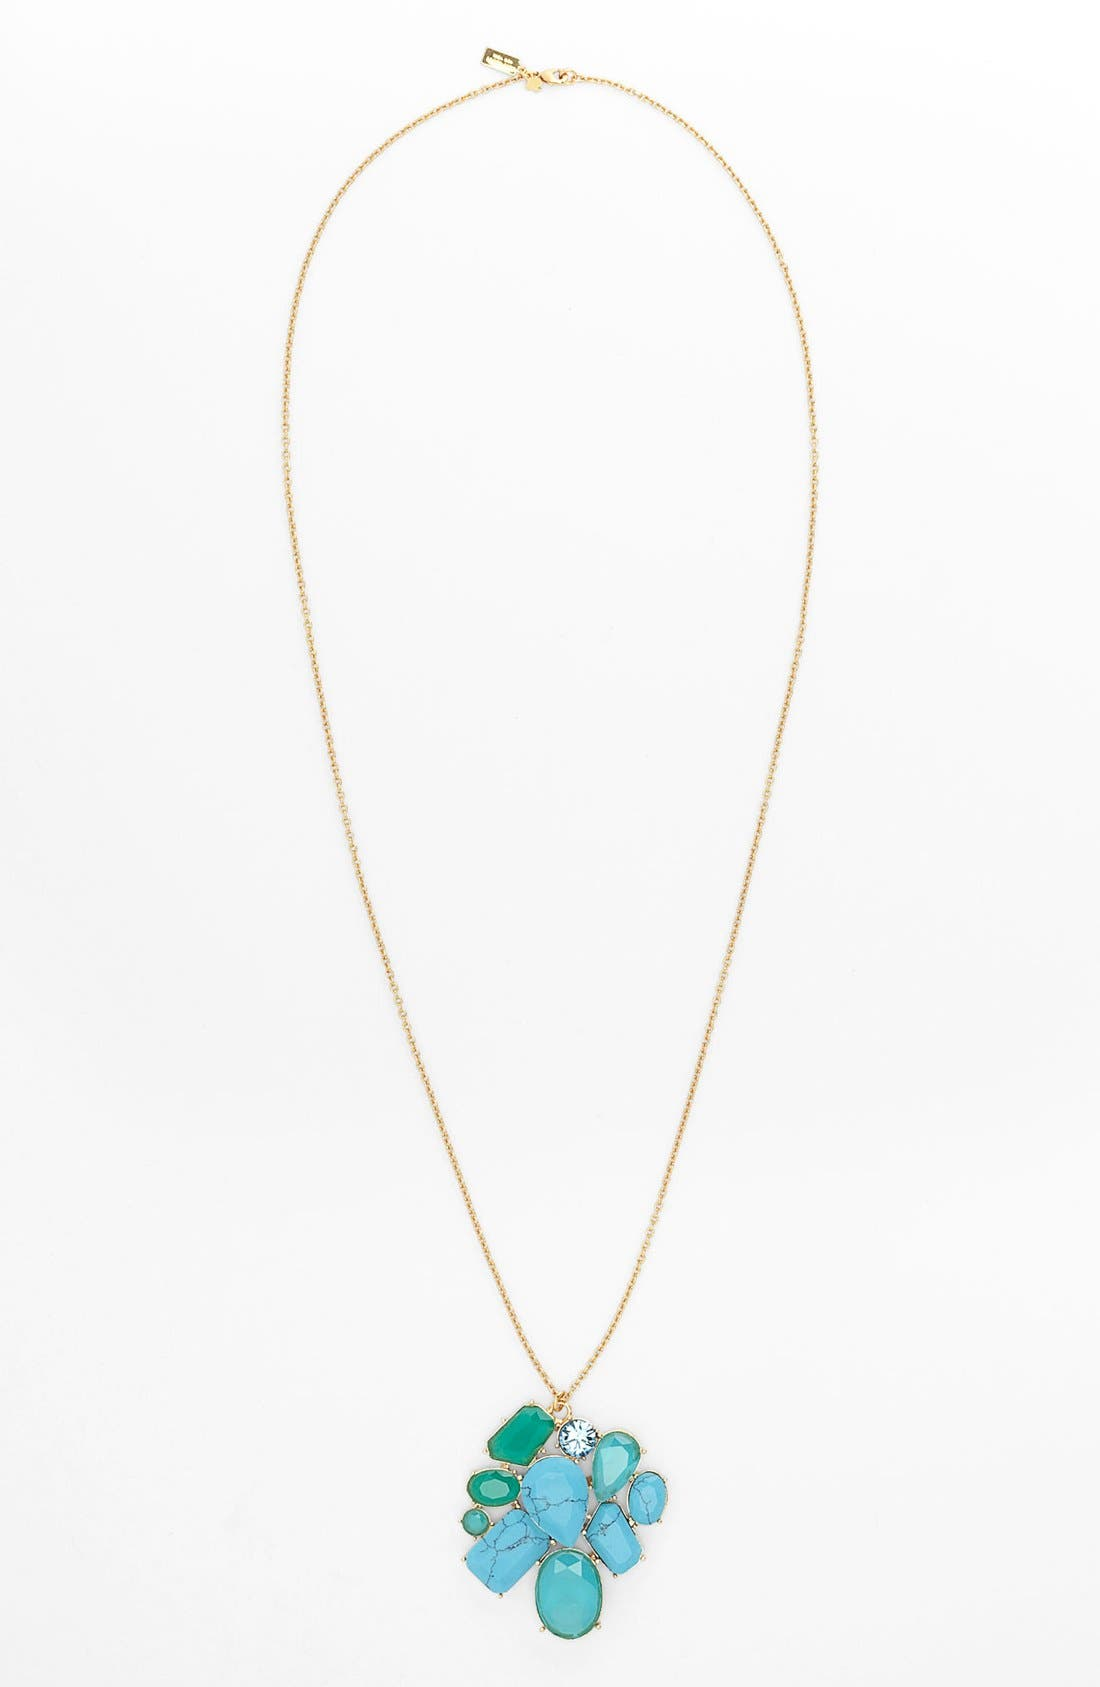 Main Image - kate spade new york 'crystal fiesta' long stone cluster pendant necklace